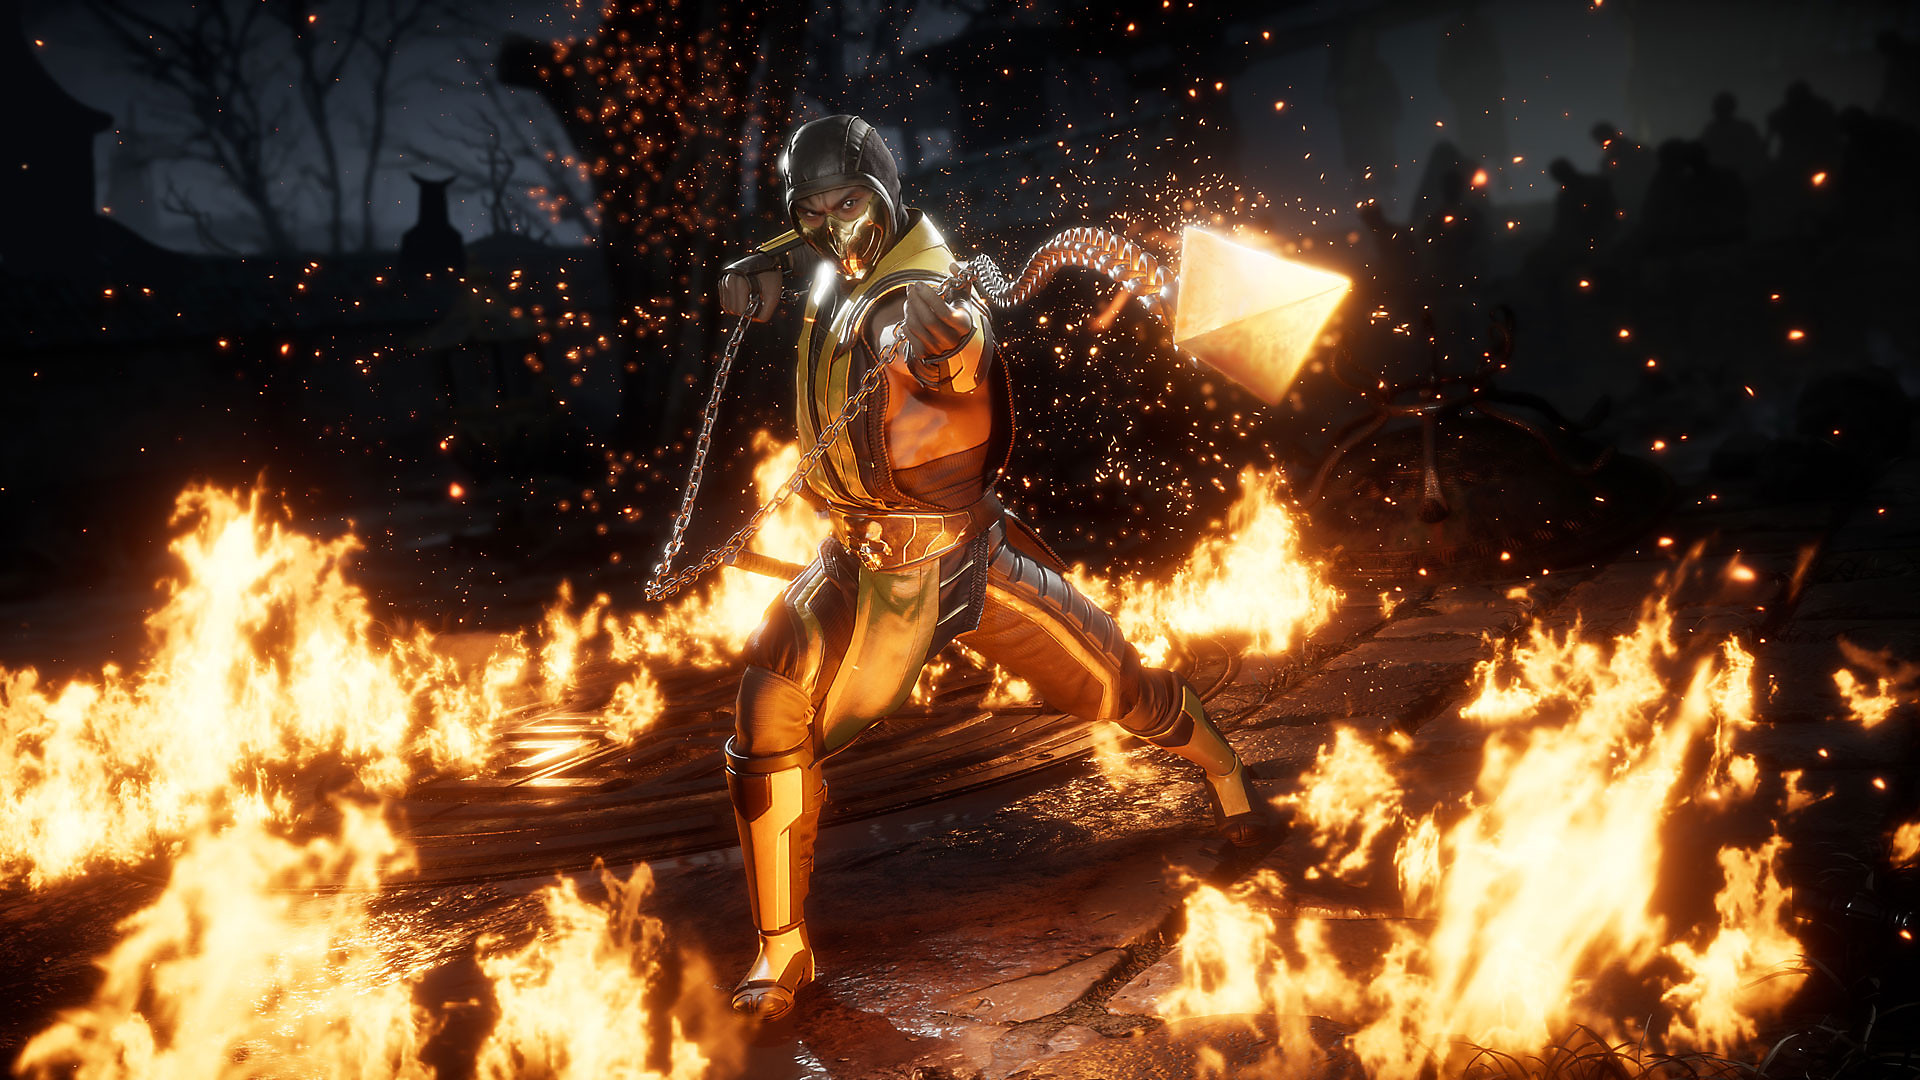 Mortal Kombat 11 - Story Mode